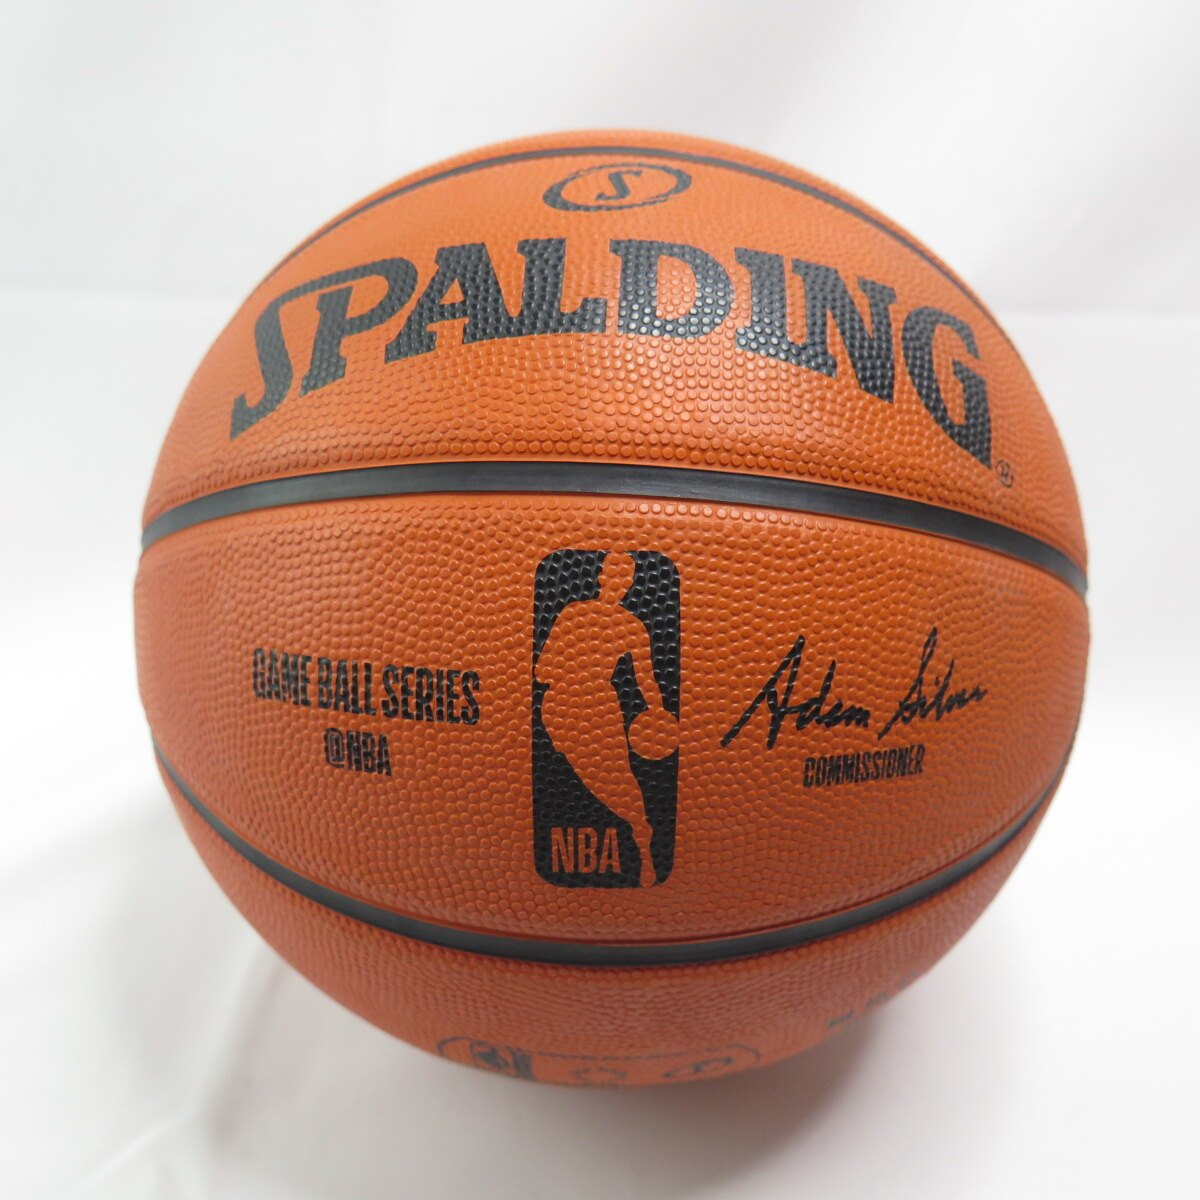 SPALDING NBA OFFICAL GAME BALL SERIES 七號球 SPA83385 橘【iSport】